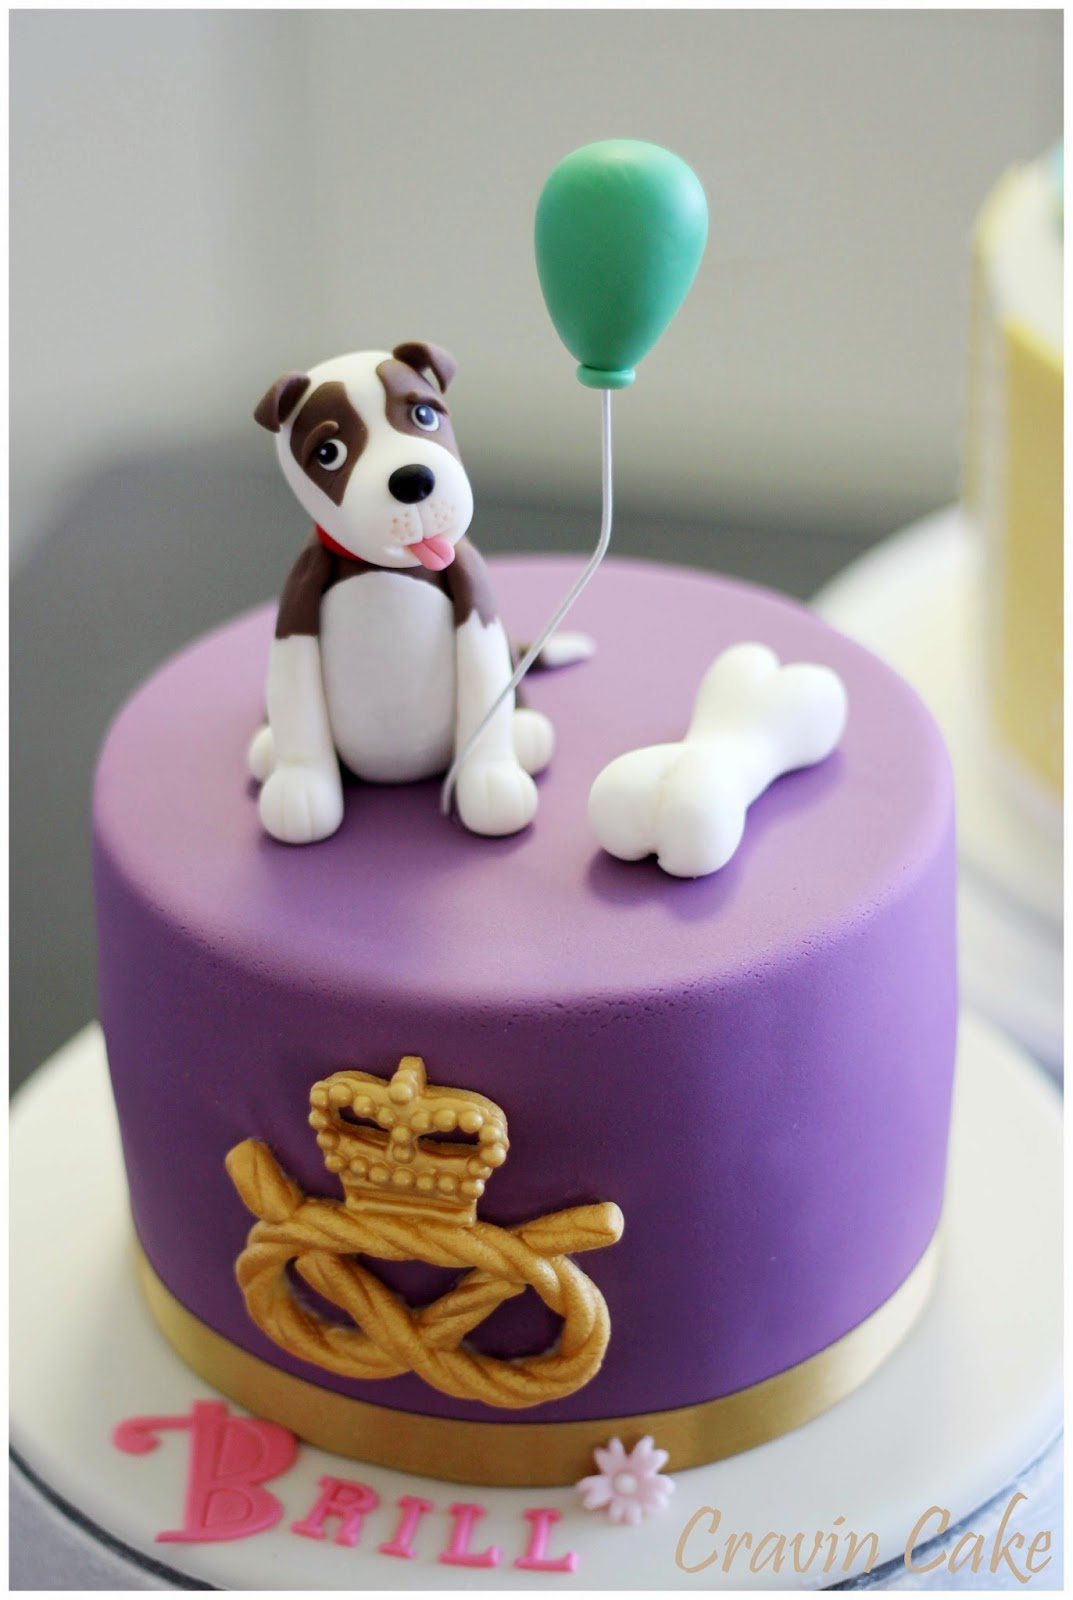 Dog stealing birthday cake - photo#13